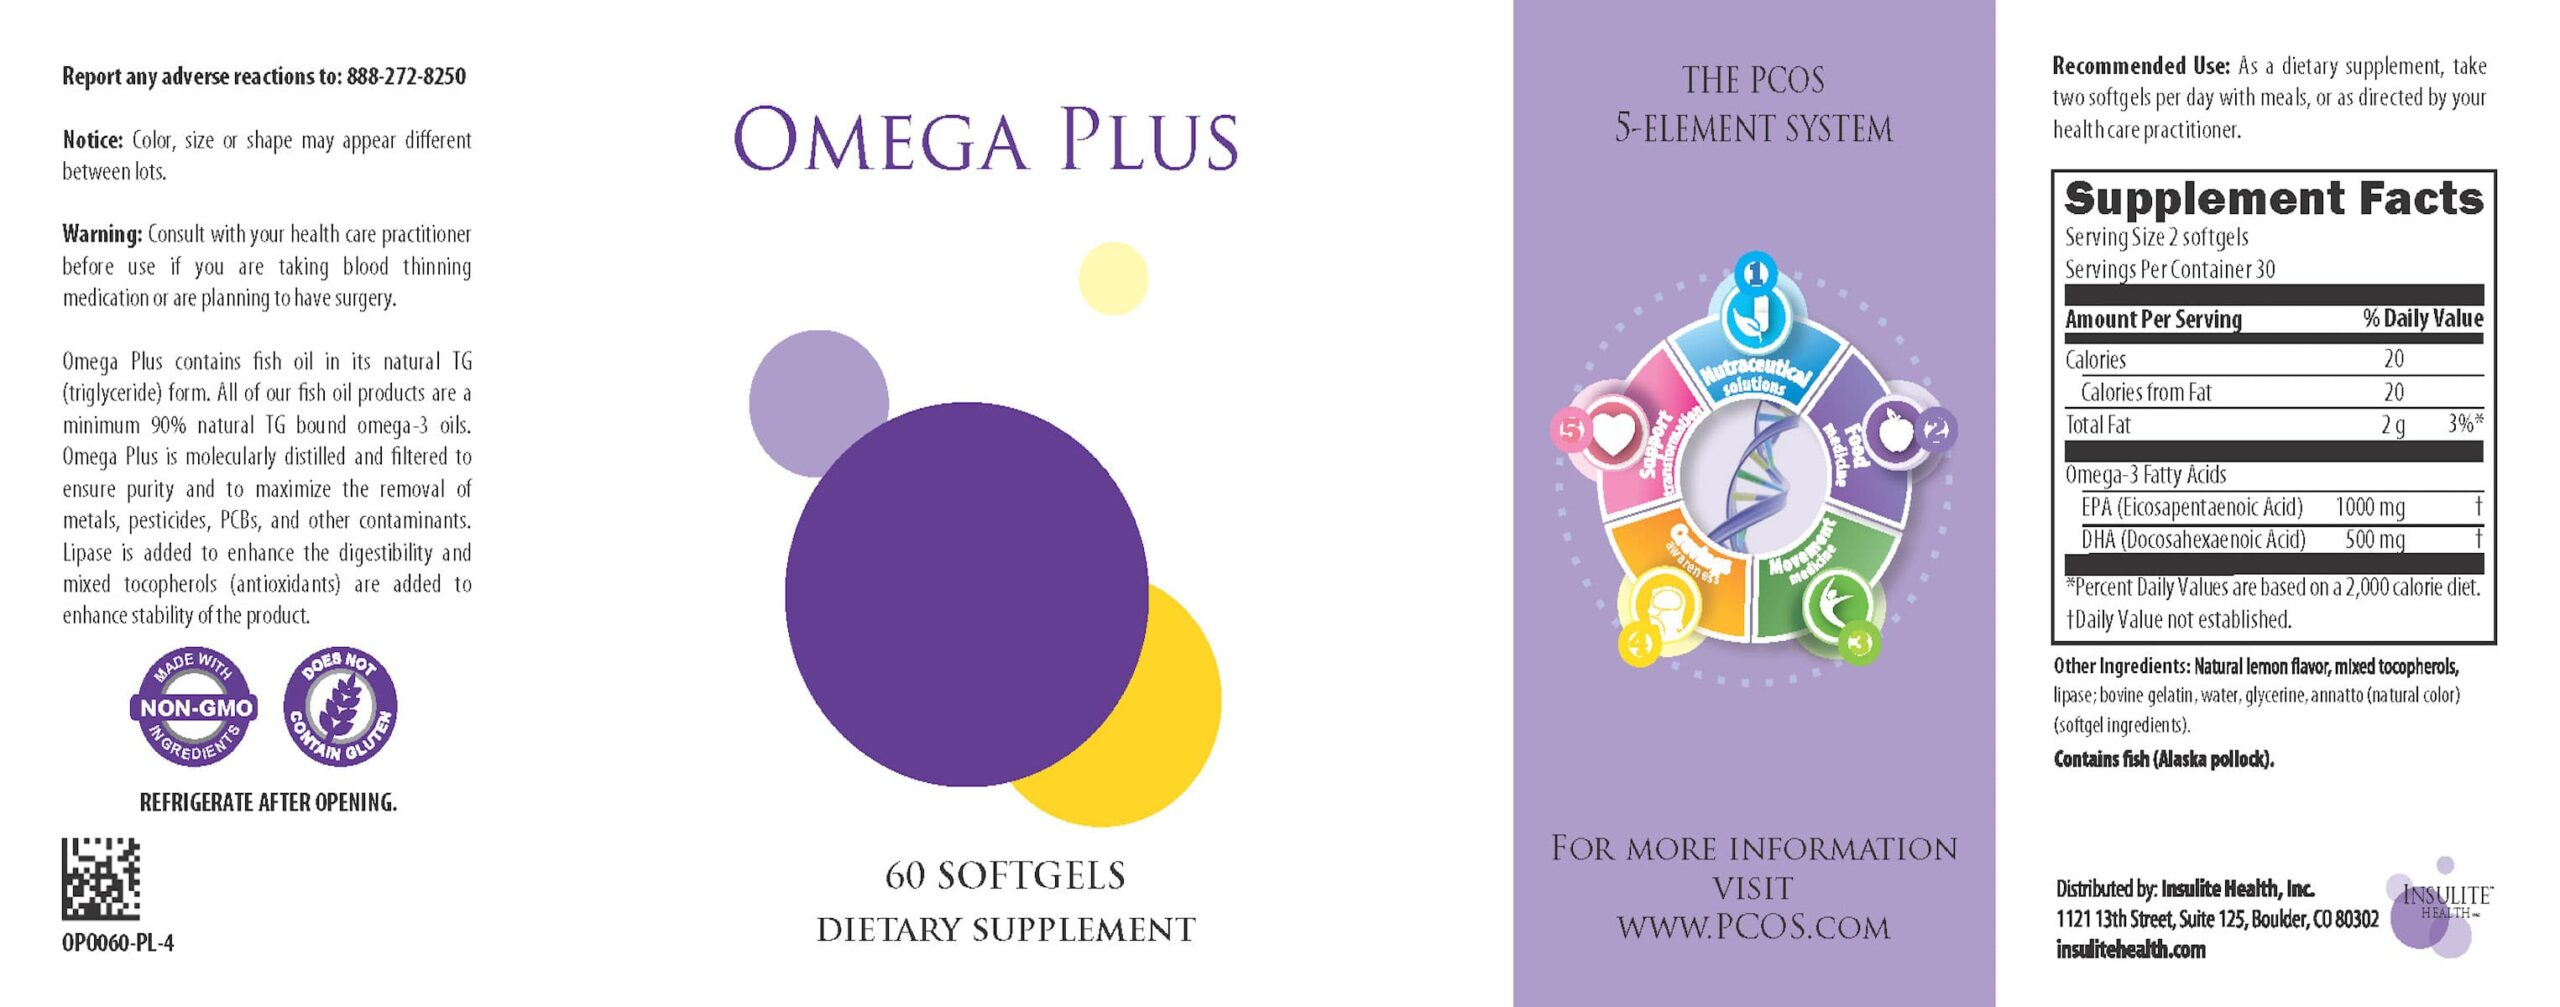 Natural Hormone Solution For PCOS - Omega PLUS